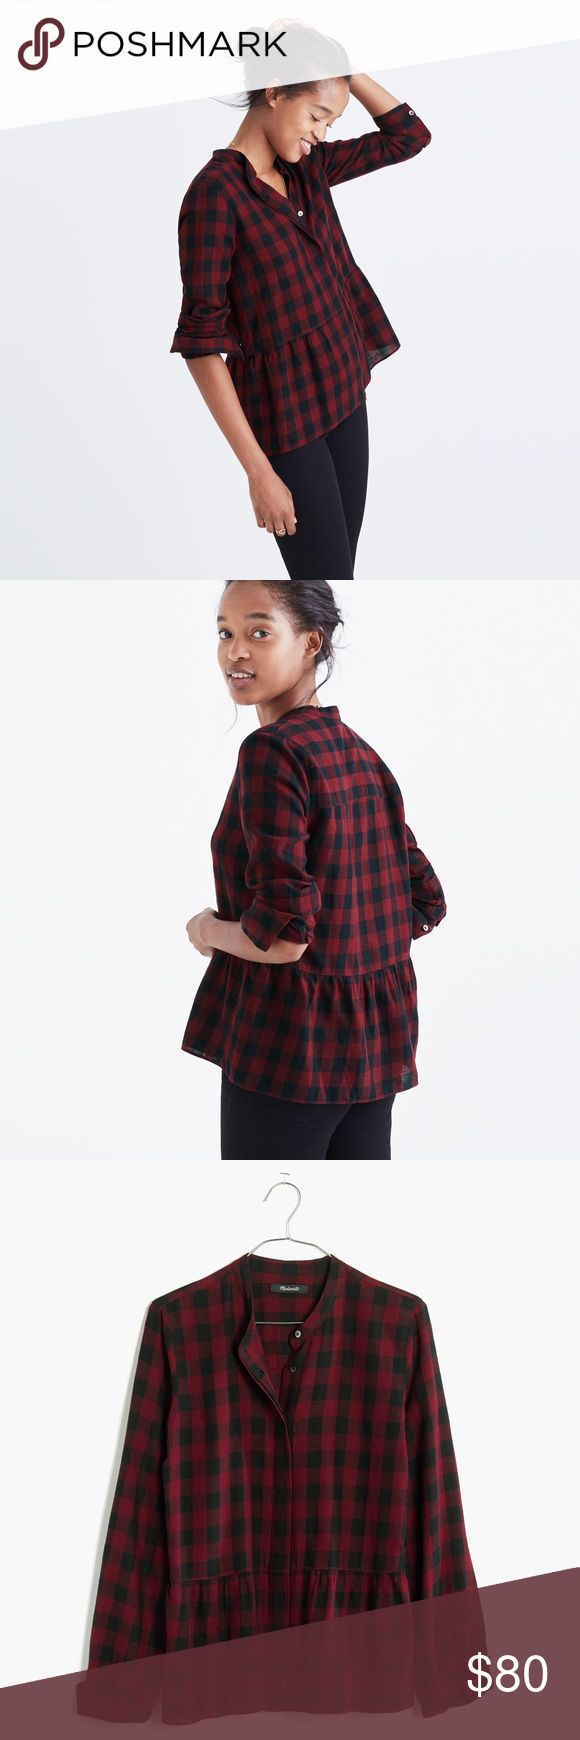 Coming soon   Madewell   Lakeside Peplum Shirt Price adjust when arrives. Arrive date Jan 23rd. Let me know if you want me to tag you in when it here. Thank you 😊   Equal parts tomboy and lady, this gauzy button-down has a low-key peplum thing happening. Work, weekend—this buffalo-check shirt can do it all.  - True to size. - Cotton. - Machine wash. Madewell Tops Button Down Shirts